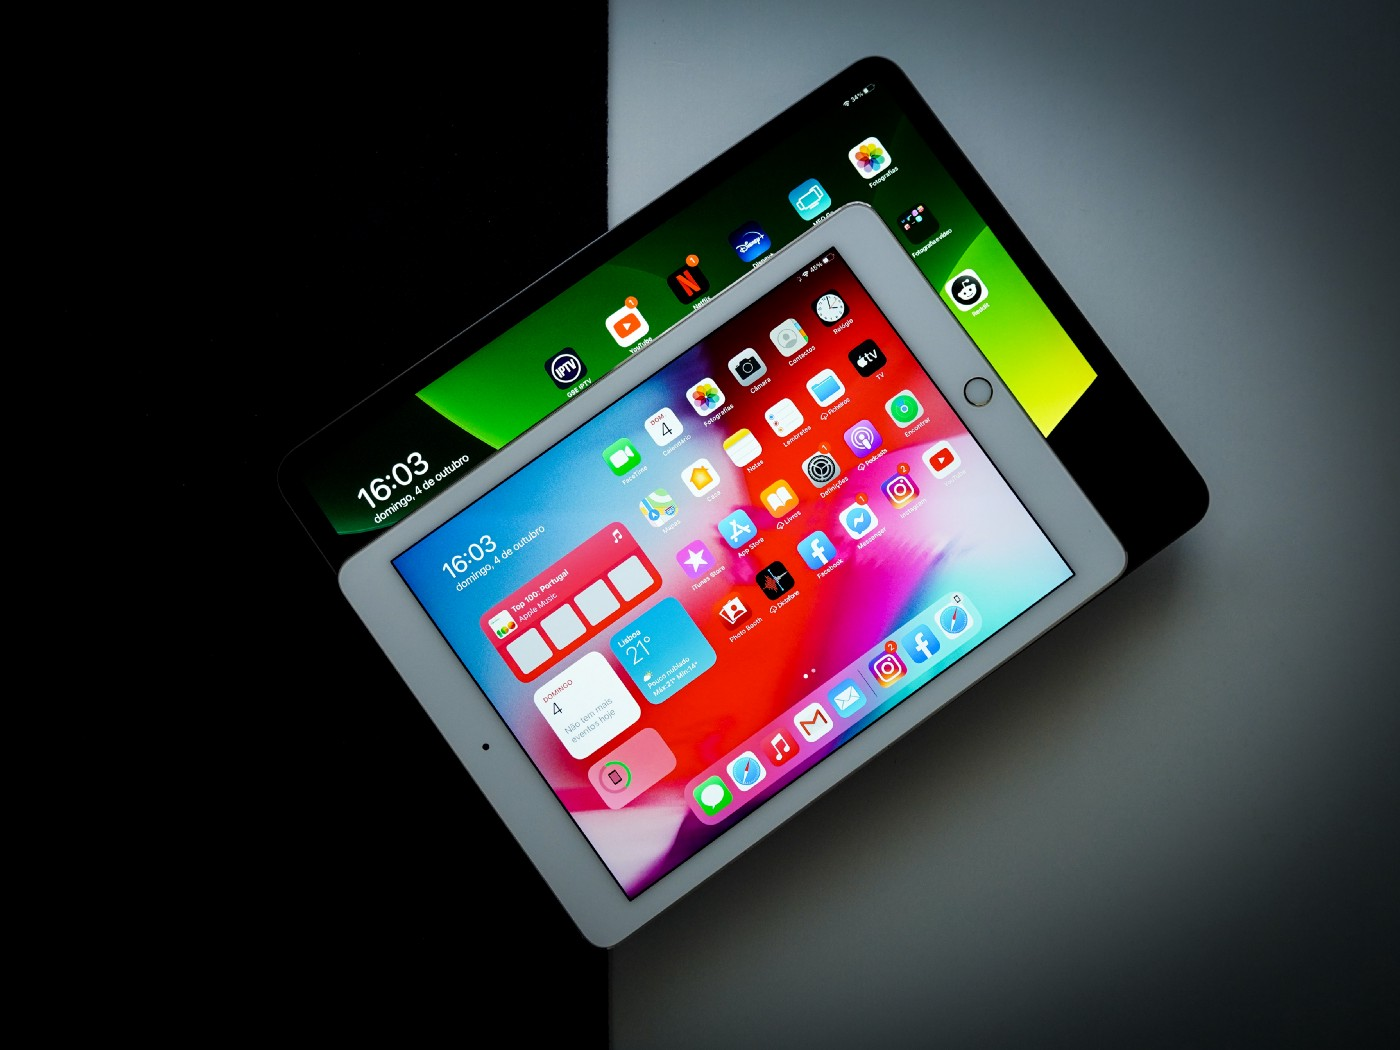 Image of iOS tablets.